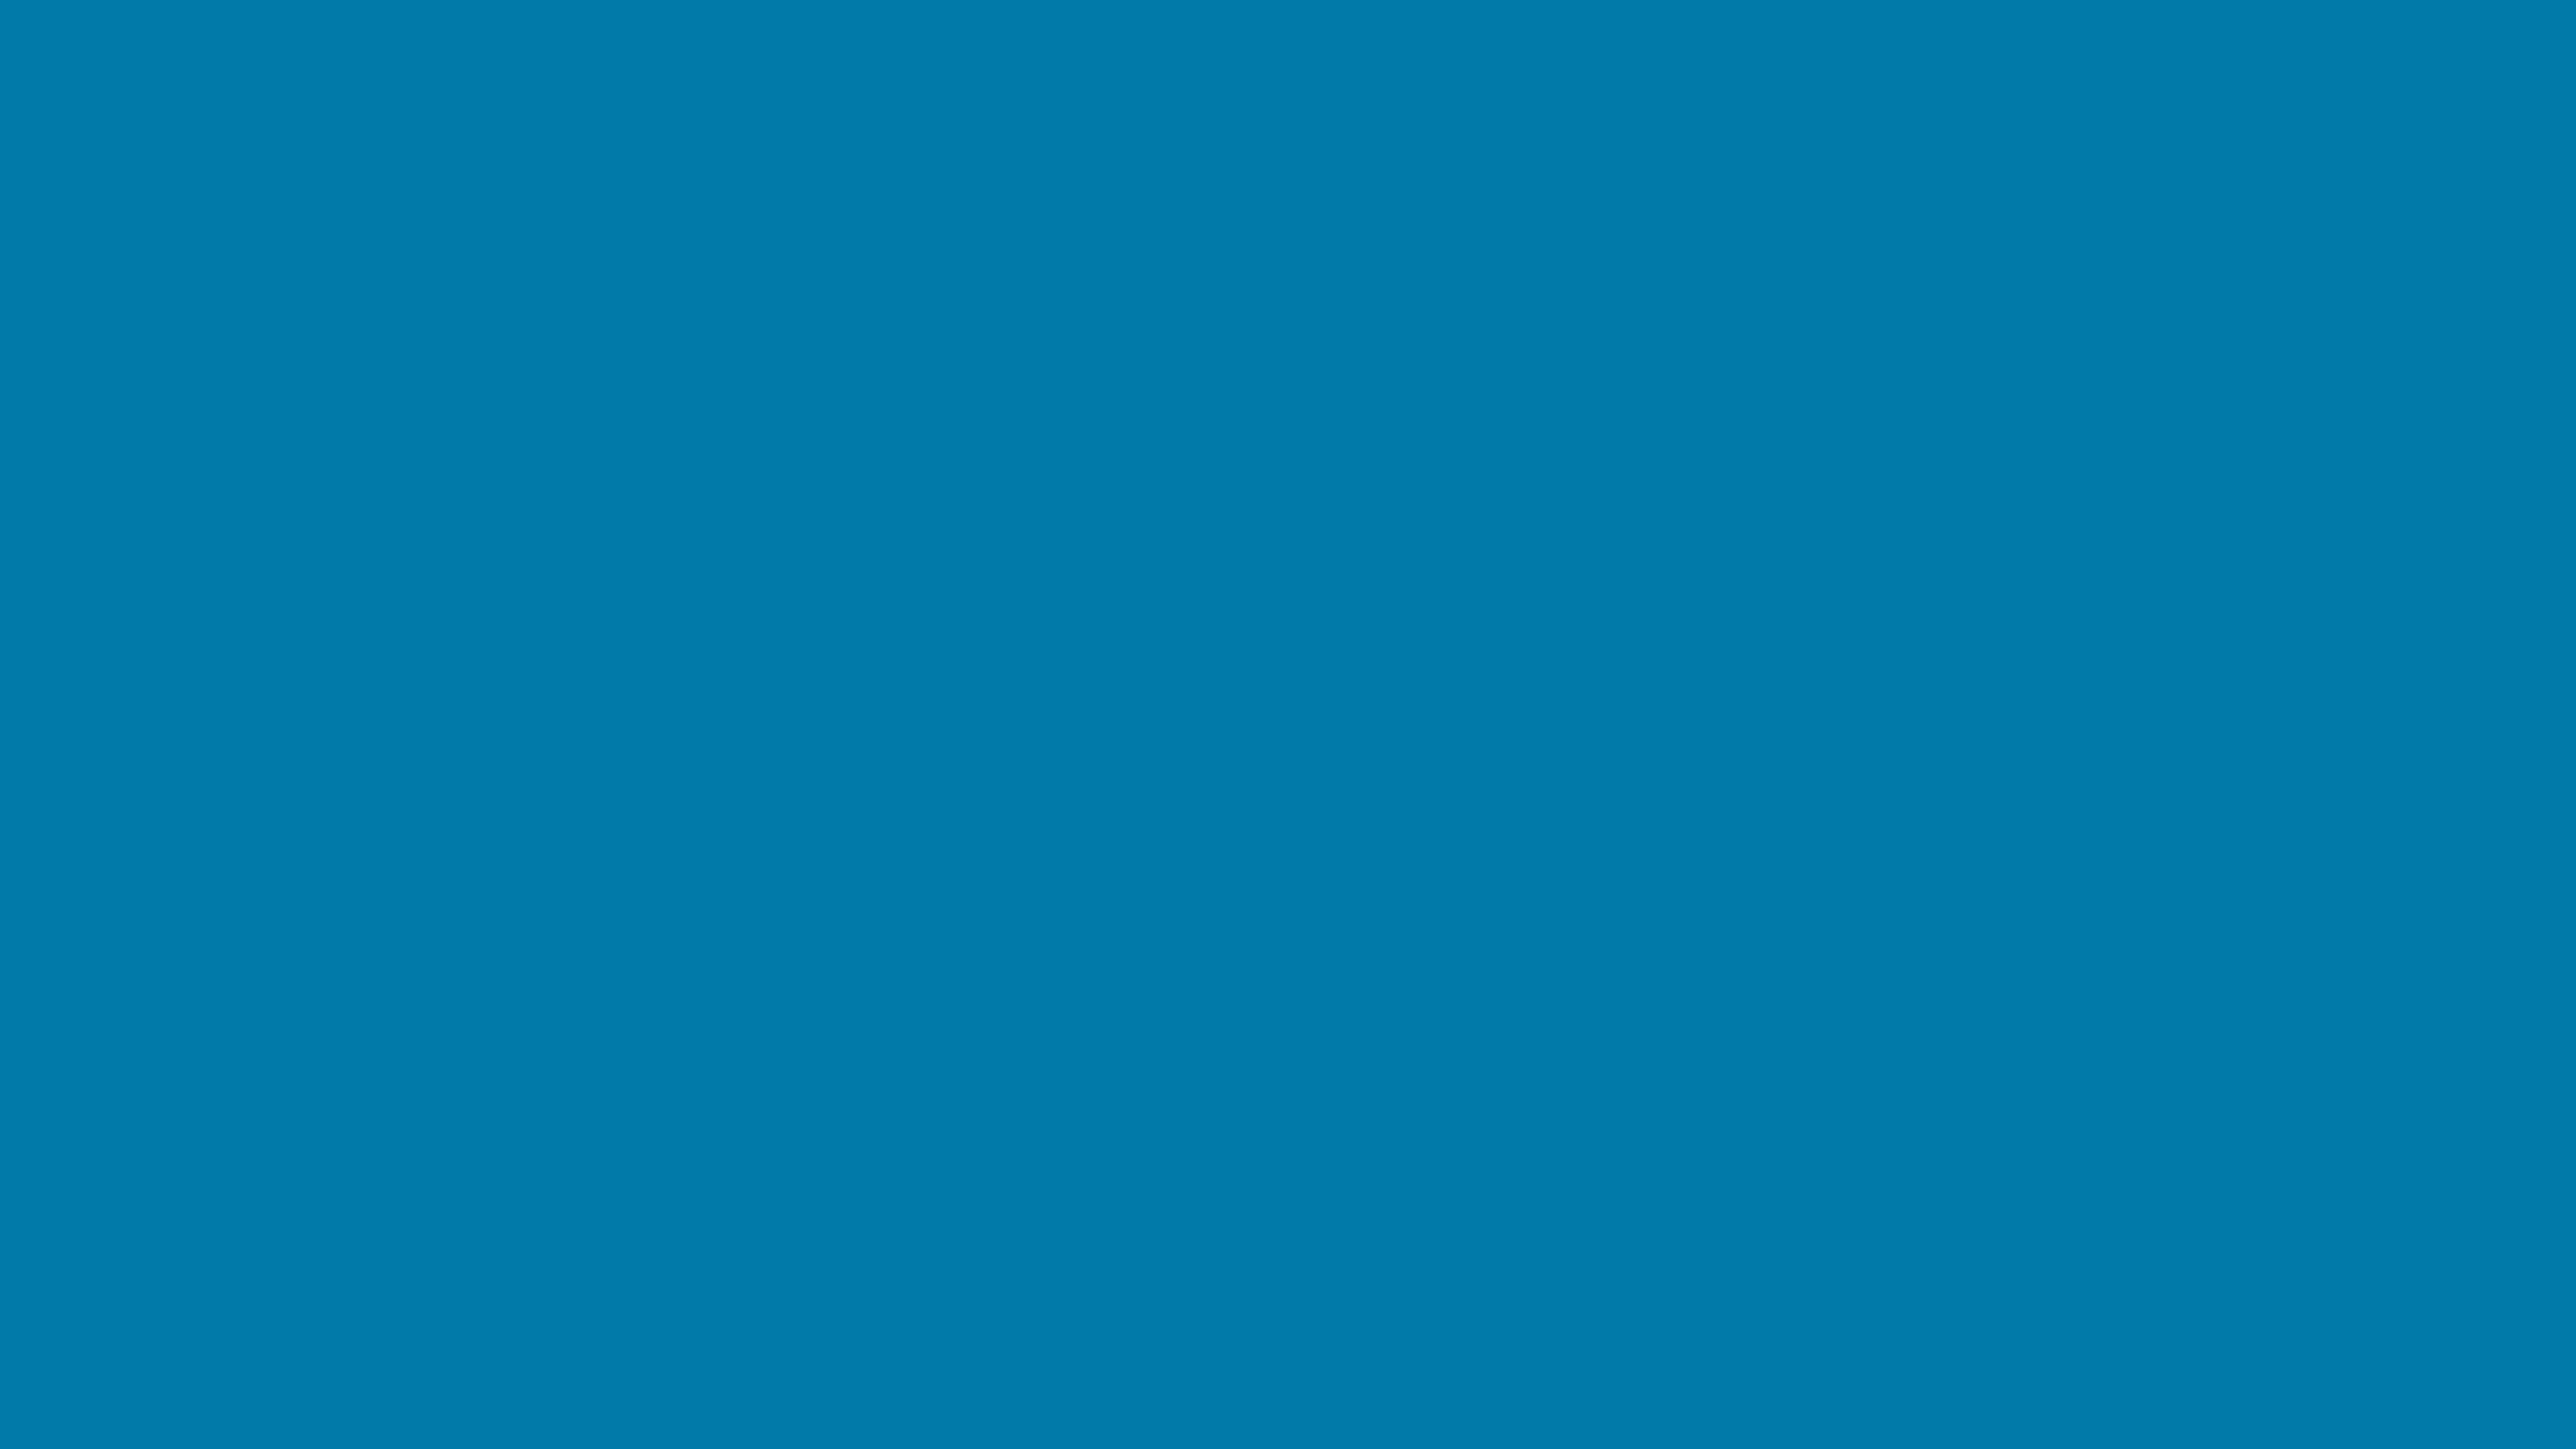 4096x2304 Celadon Blue Solid Color Background